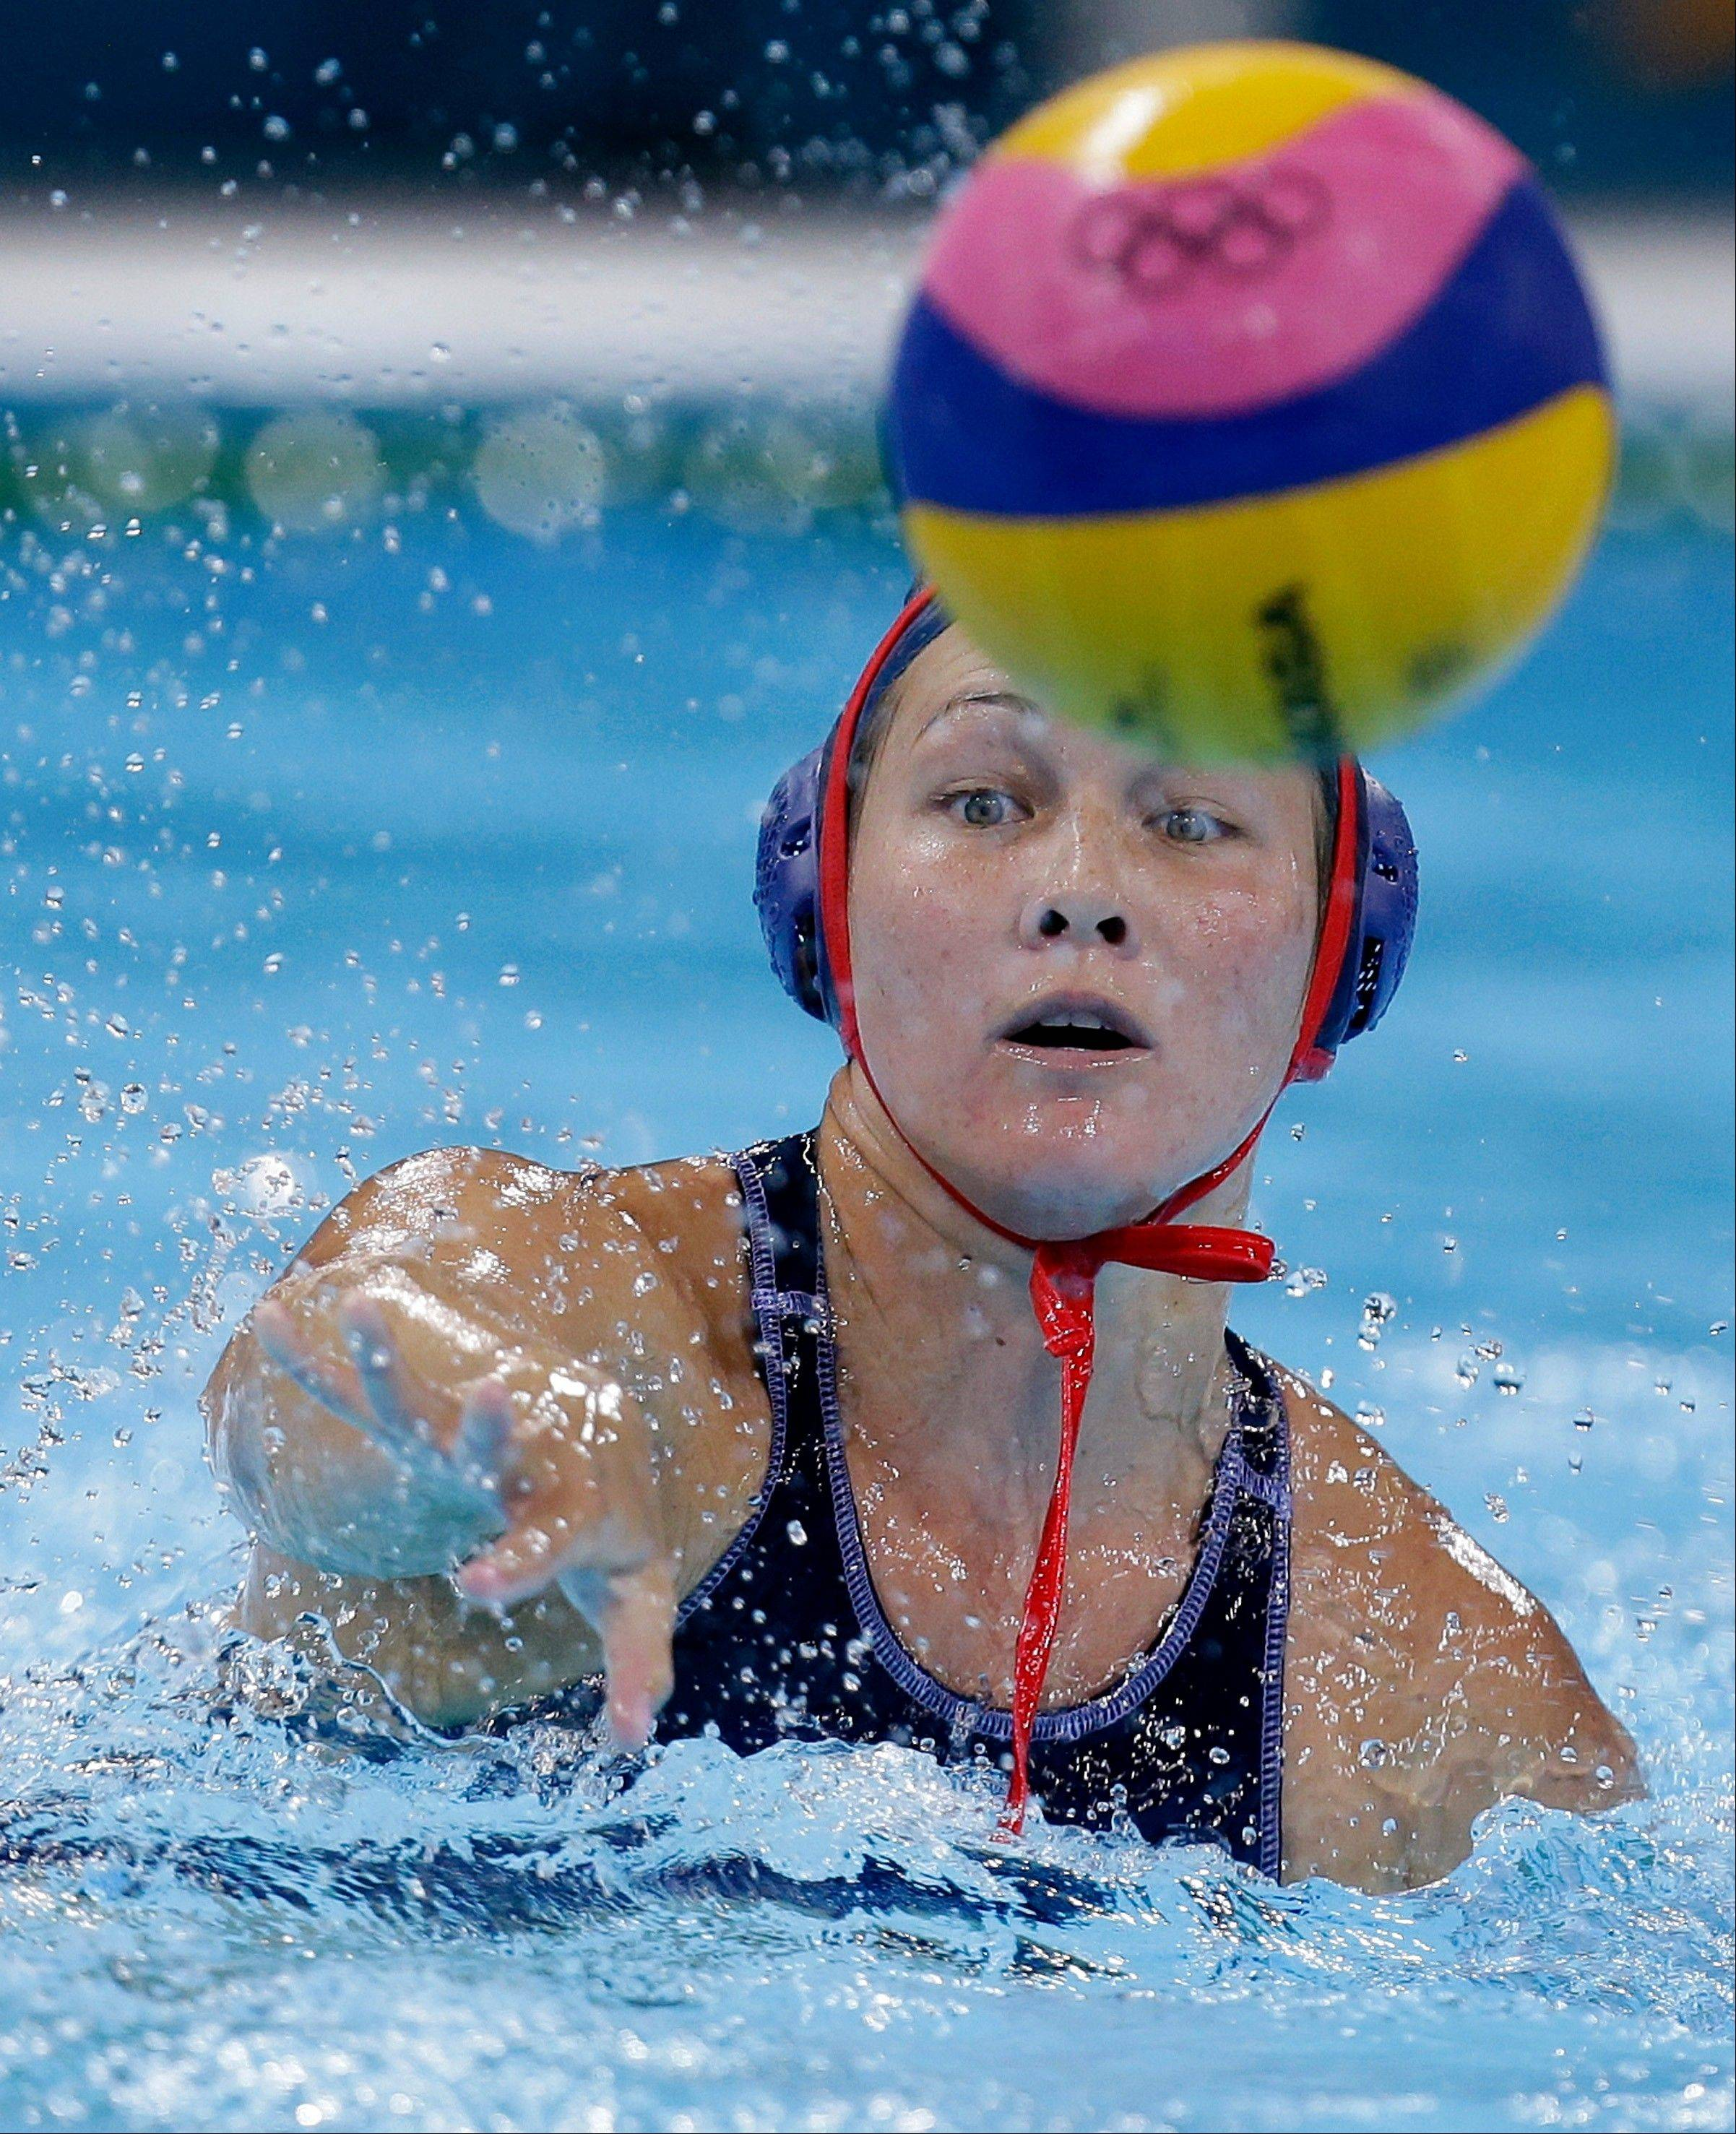 Melissa Seidemann of the United States shoots at goal during their women's water polo preliminary round match against Spain Wednesday at the 2012 Summer Olympics. She tallied 1 score in the 9-9 match.